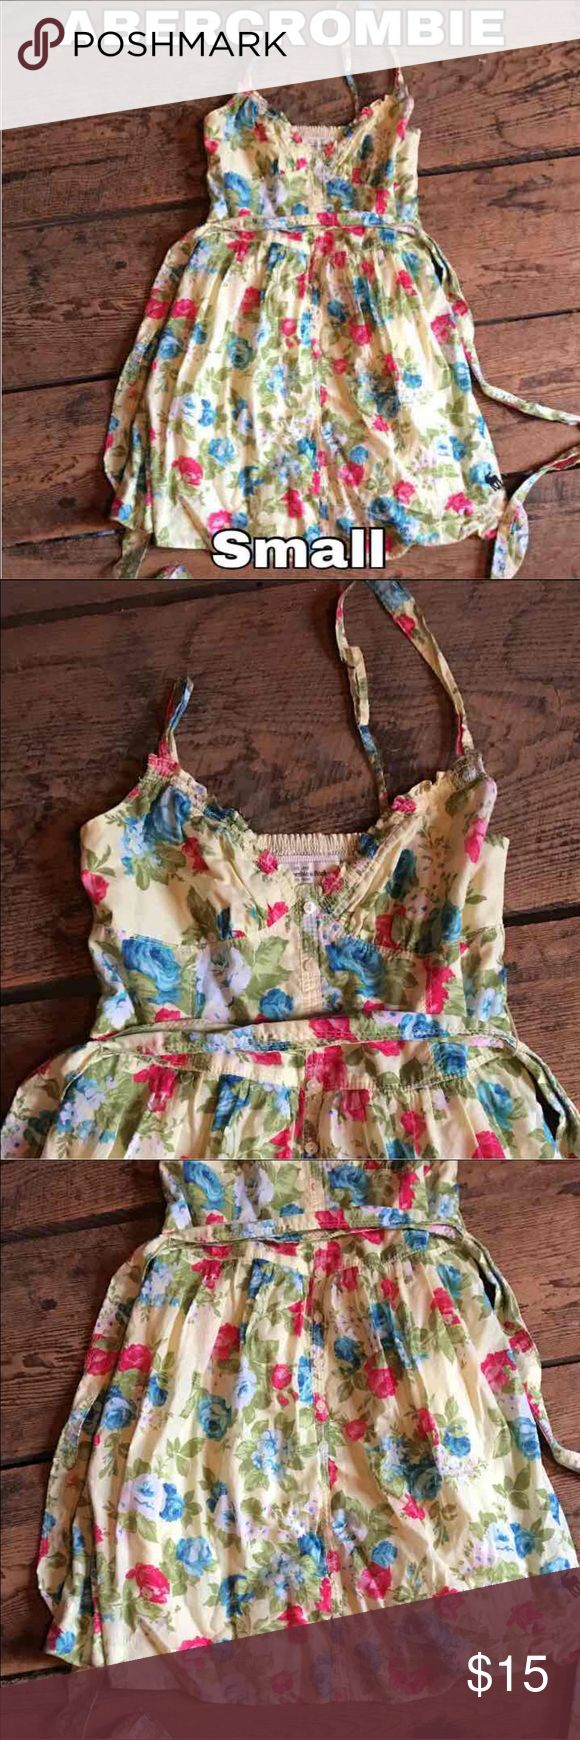 Women's Small Yellow Abercrombie dress Like new, I never wore it. Abercrombie & Fitch Dresses Mini